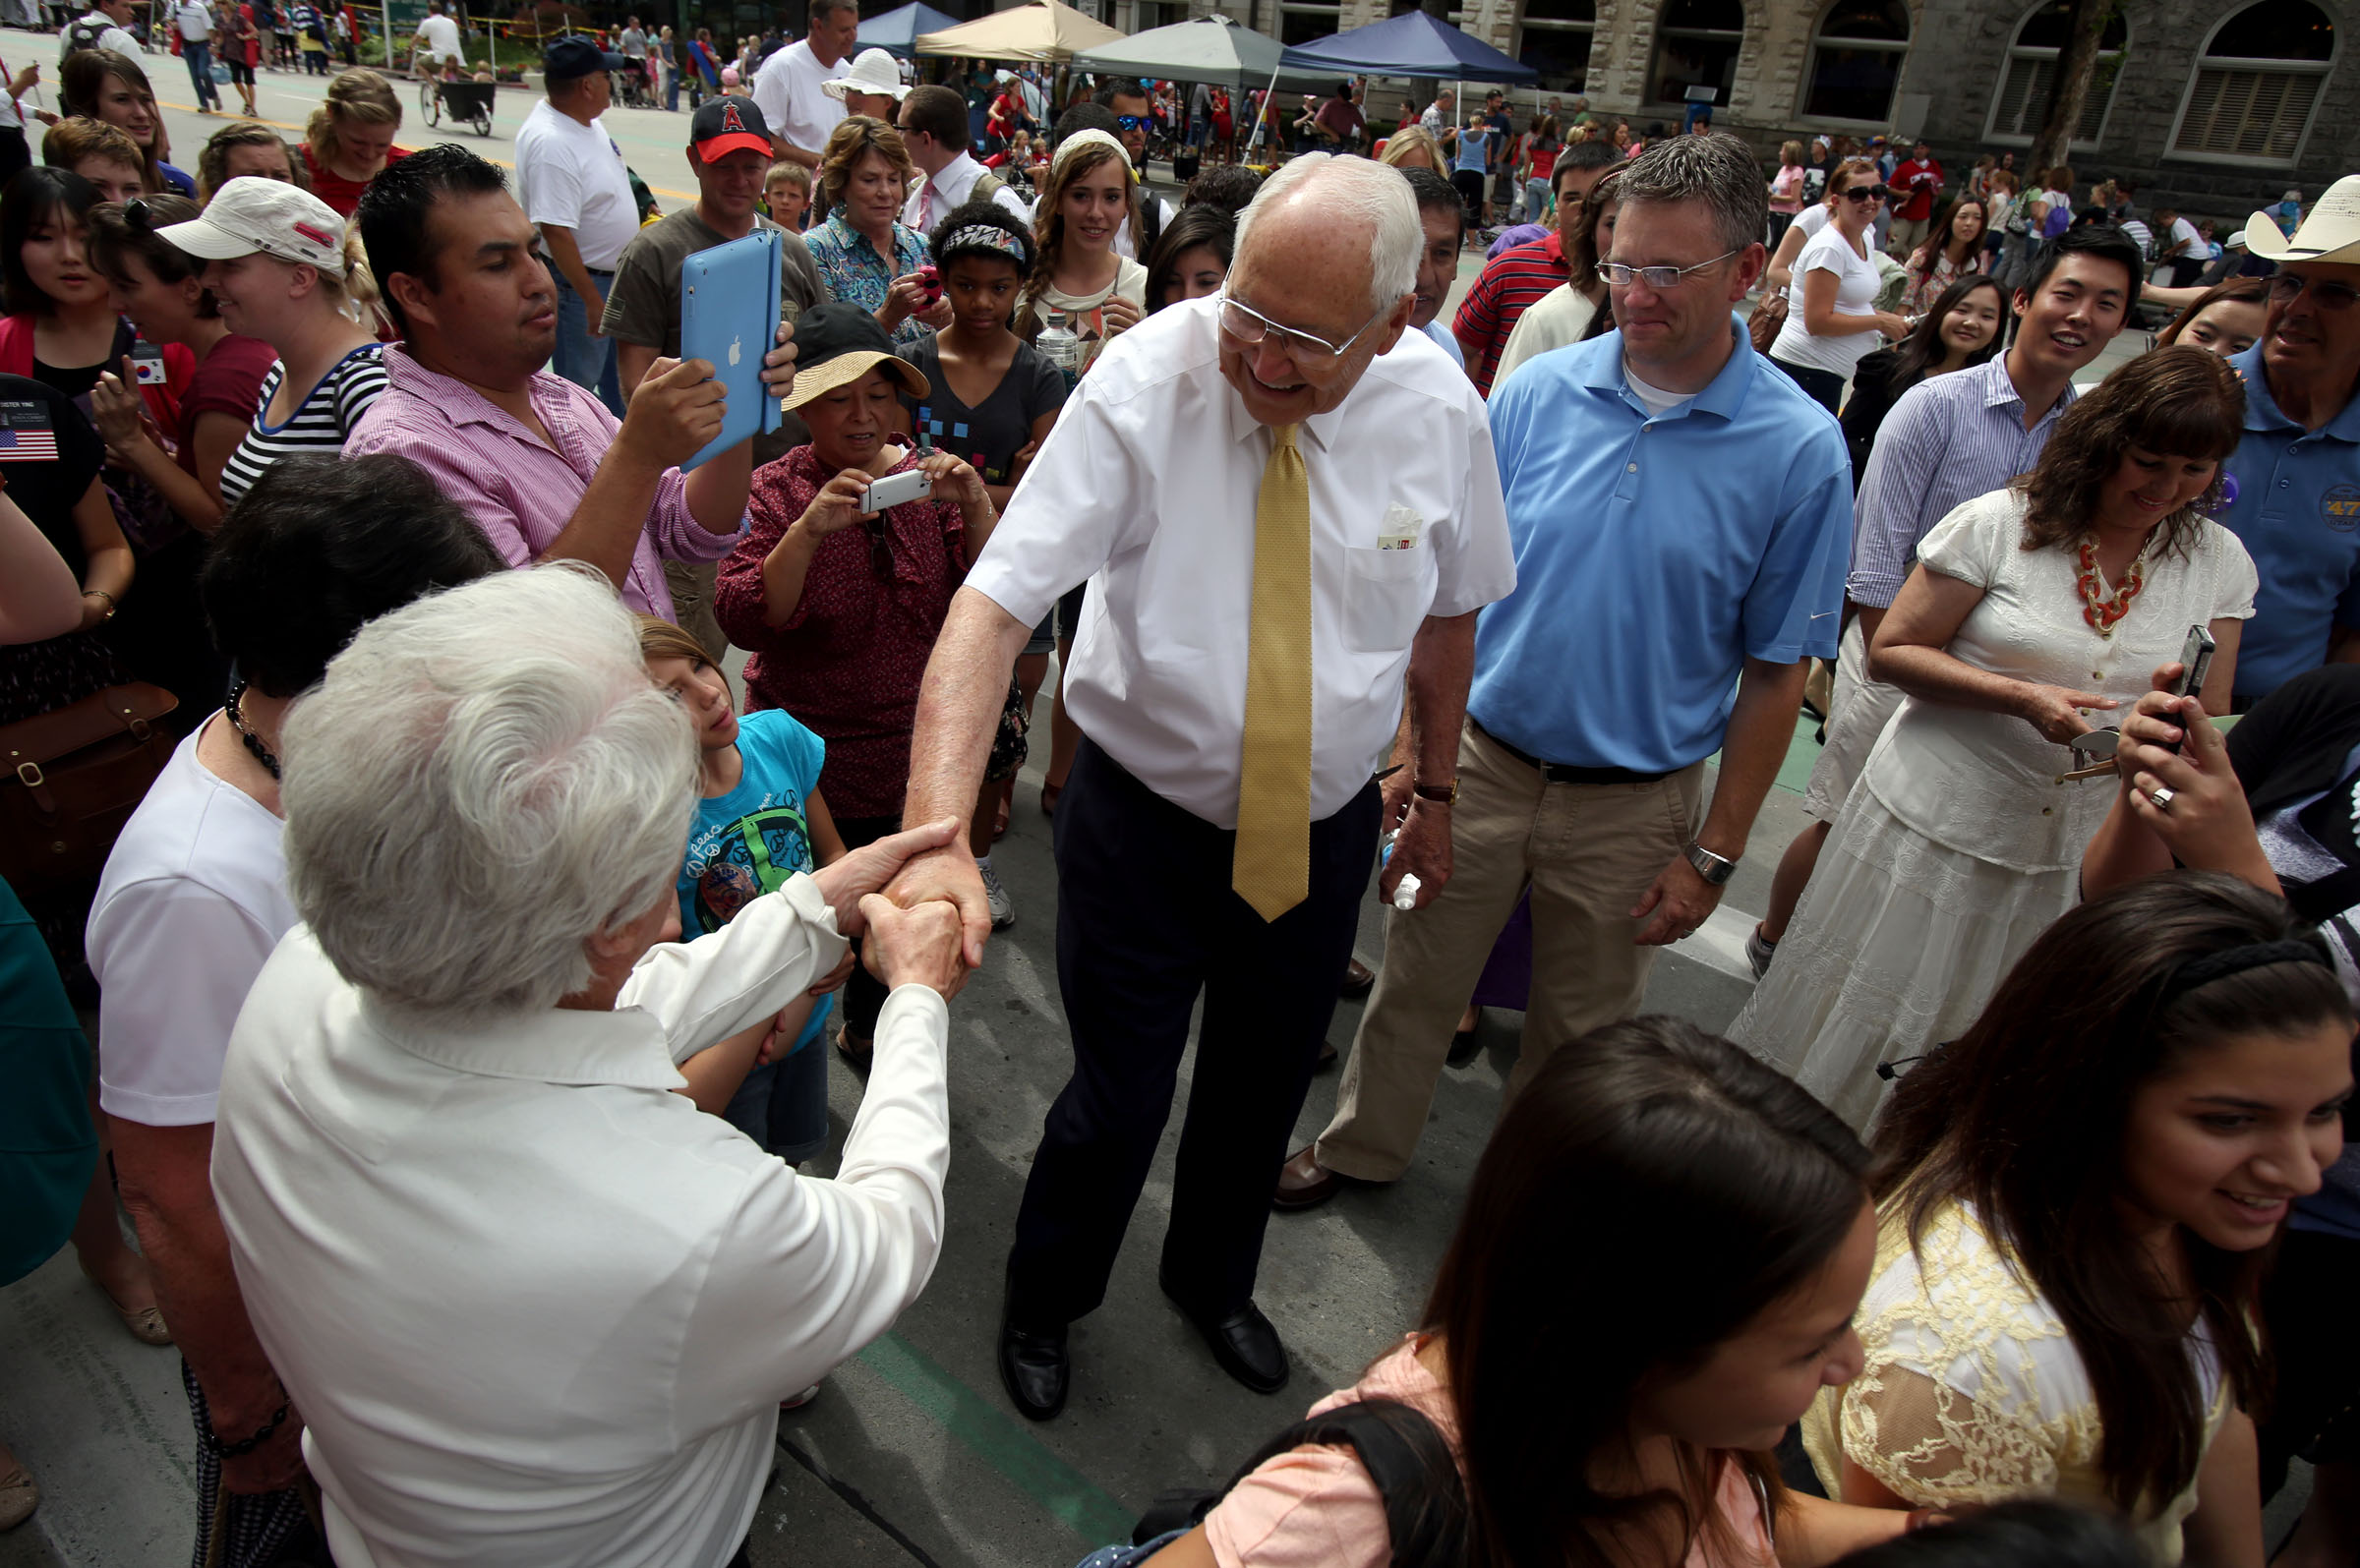 Elder L. Tom Perry is surrounded by people who want to talk to him as he leaves the Days of '47 Parade in Salt Lake City on Wednesday, July 24, 2013.